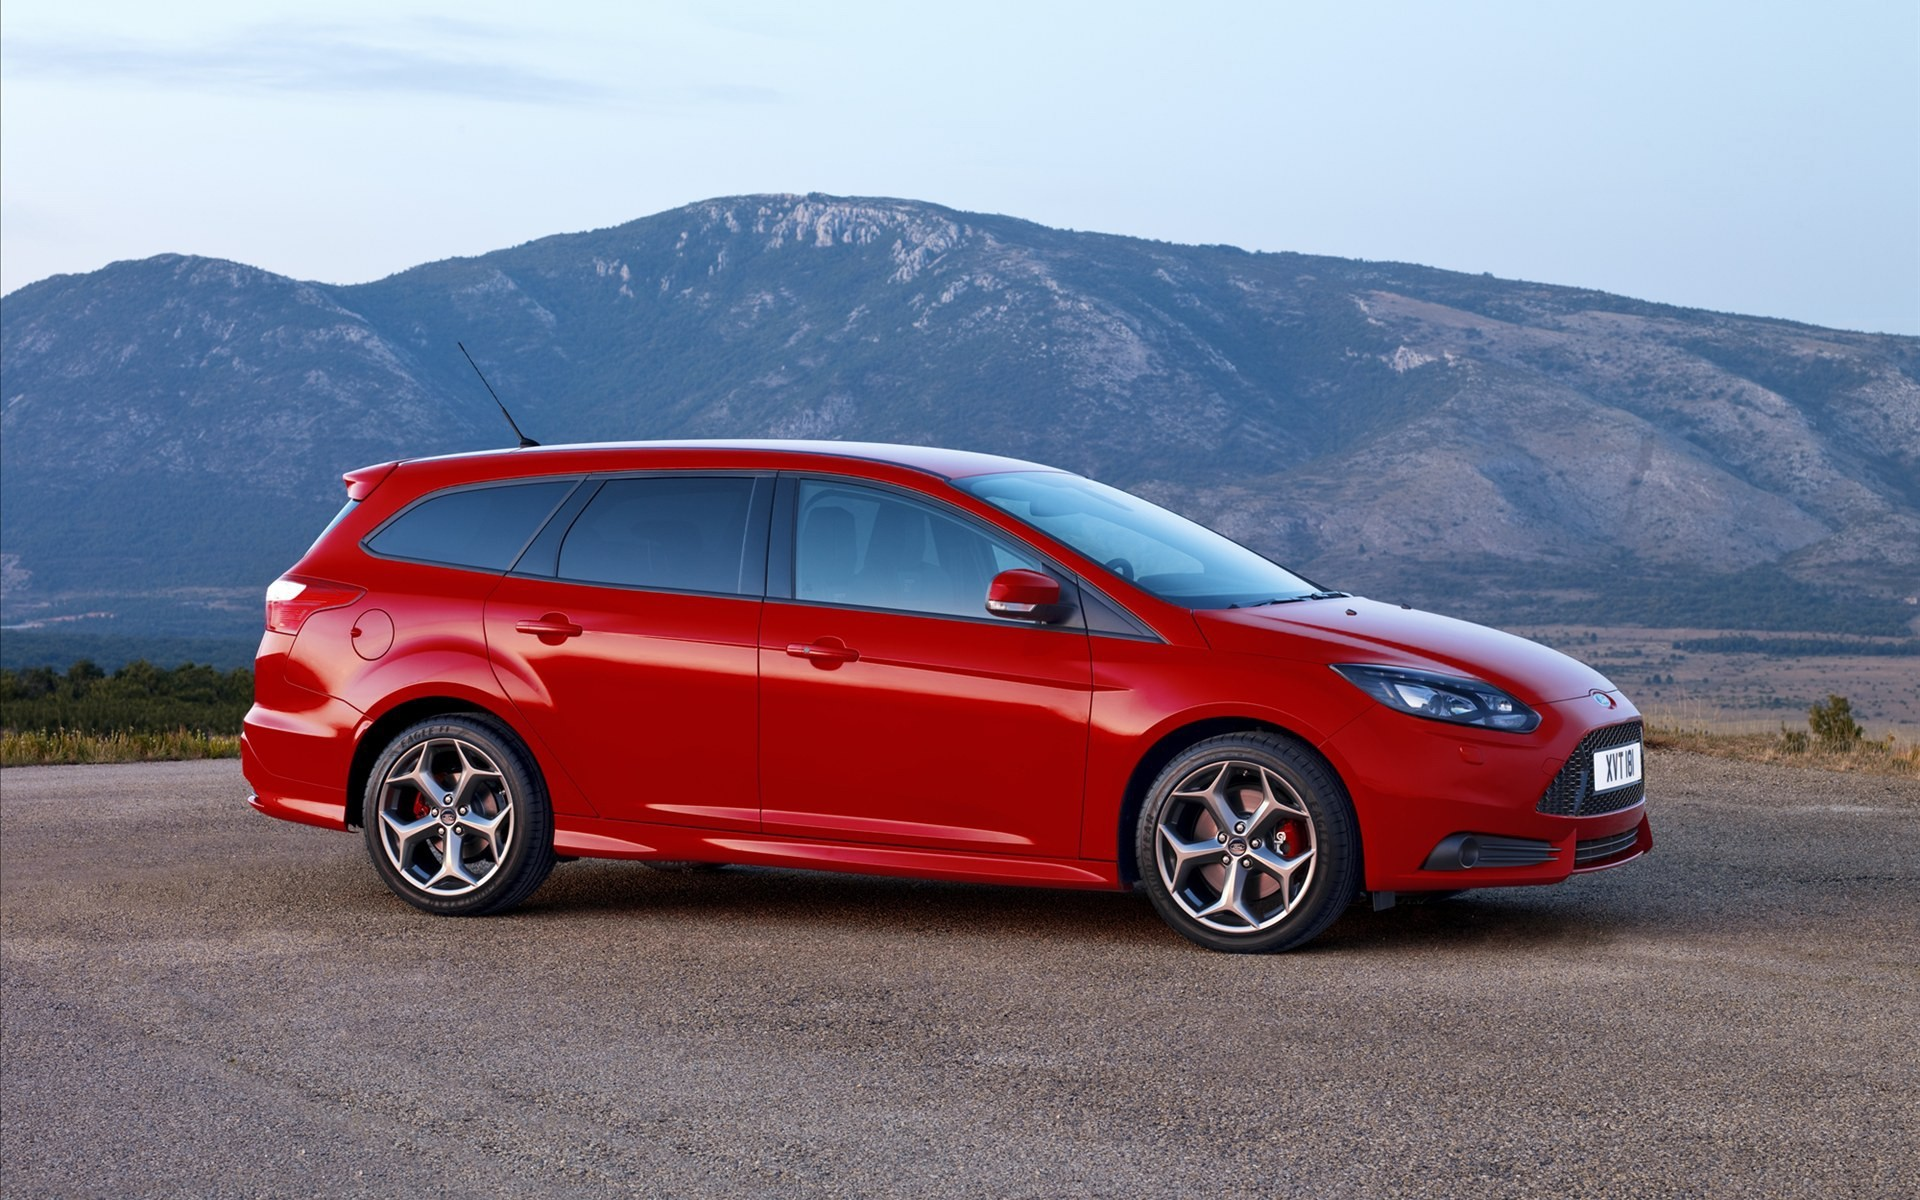 cars Ford Ford Focus HD Wallpaper